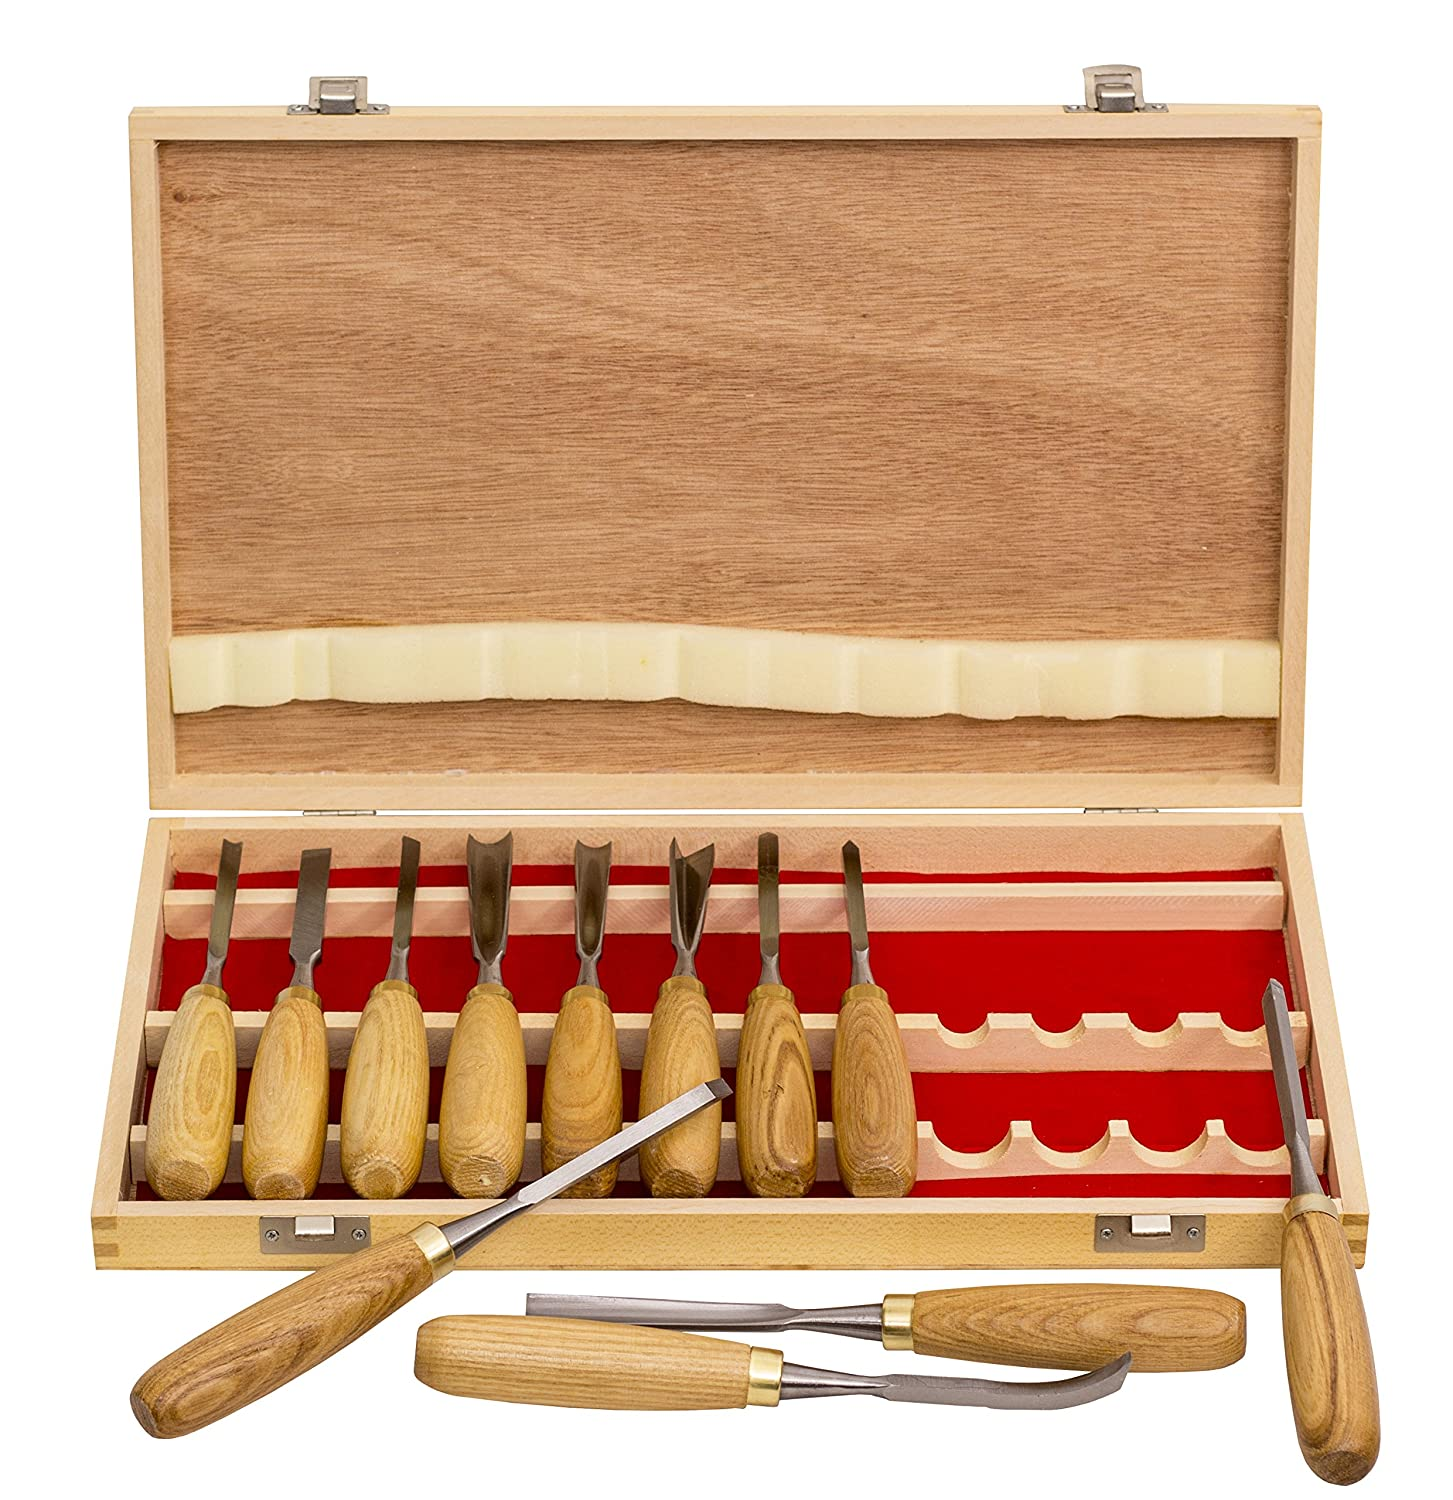 12-PC Professional Carving Chisel Tool Set with American Ash Wood Handle WISDOM TOOL